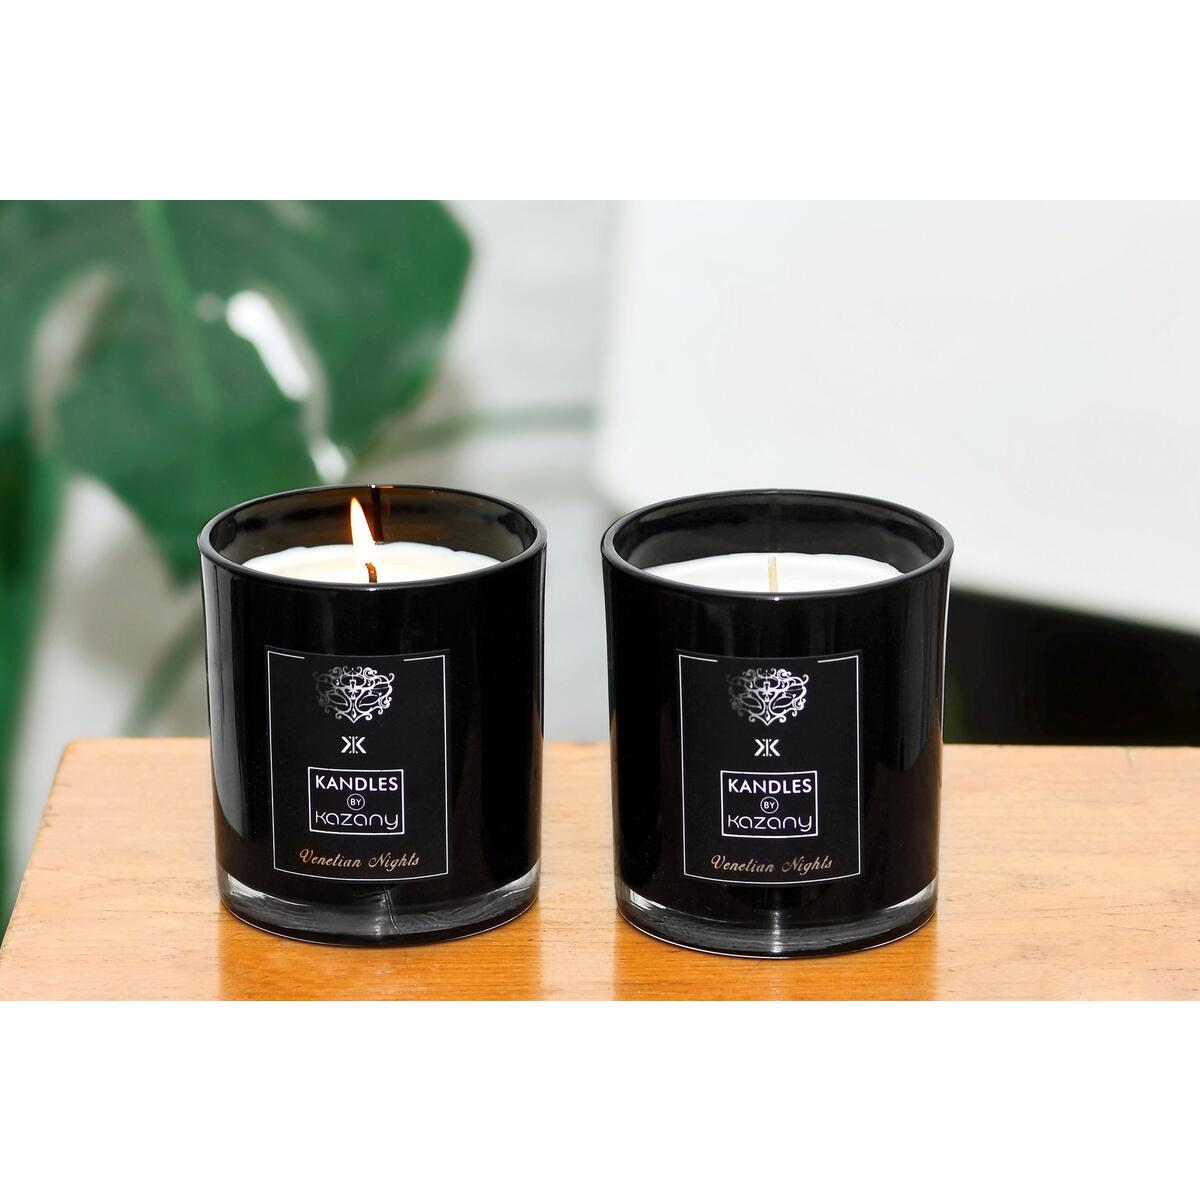 Venetian Nights | Luxury Scented Candle | Italy | Kandles By Kazany